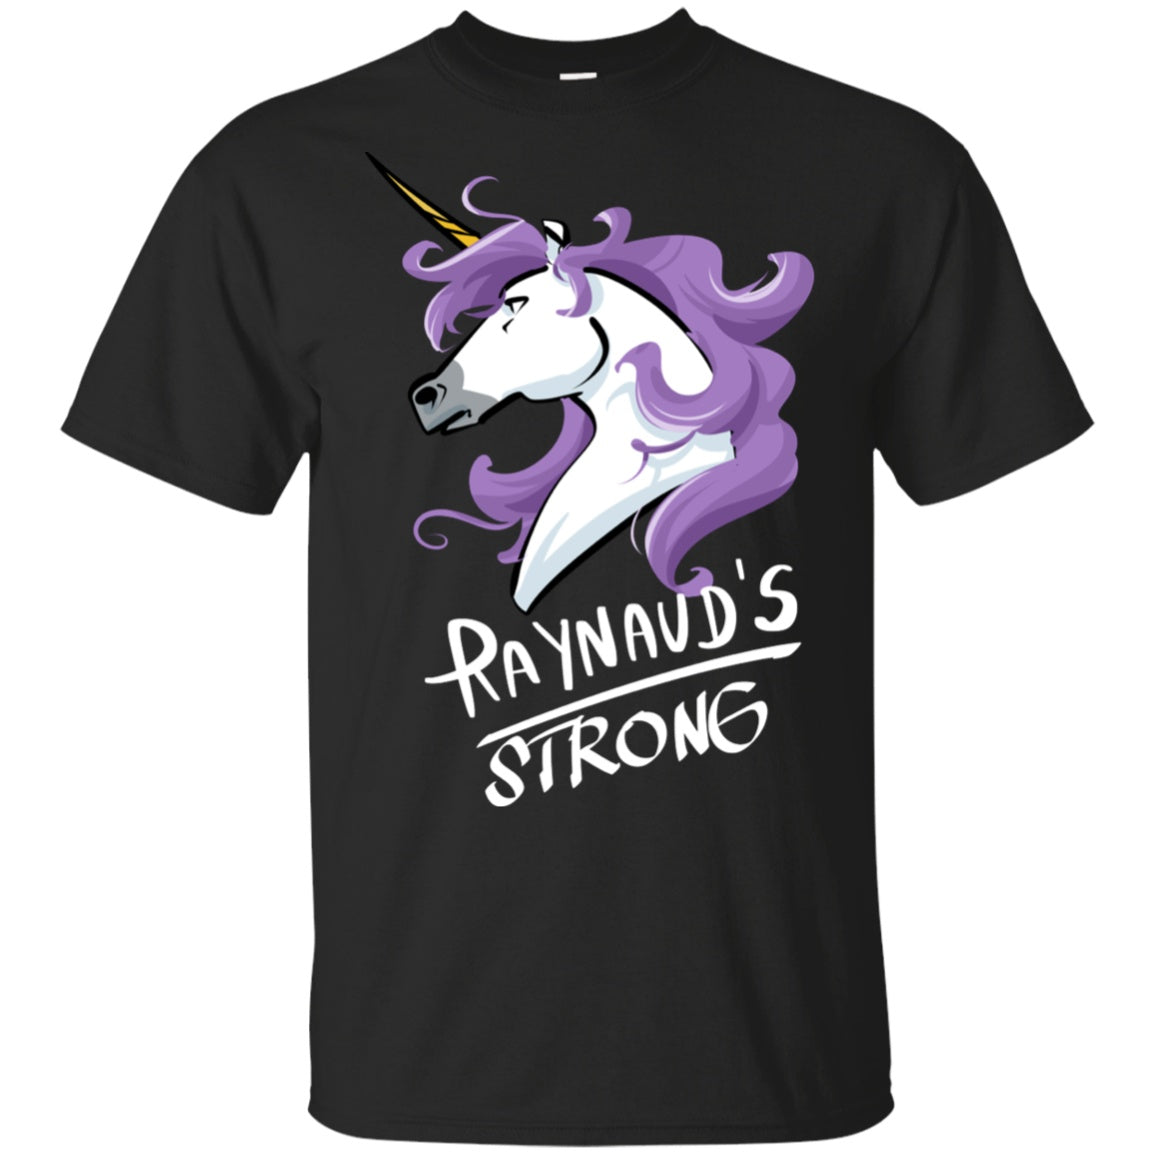 Raynauds Strong Unicorn Cotton Unisex T-Shirt - The Unchargeables